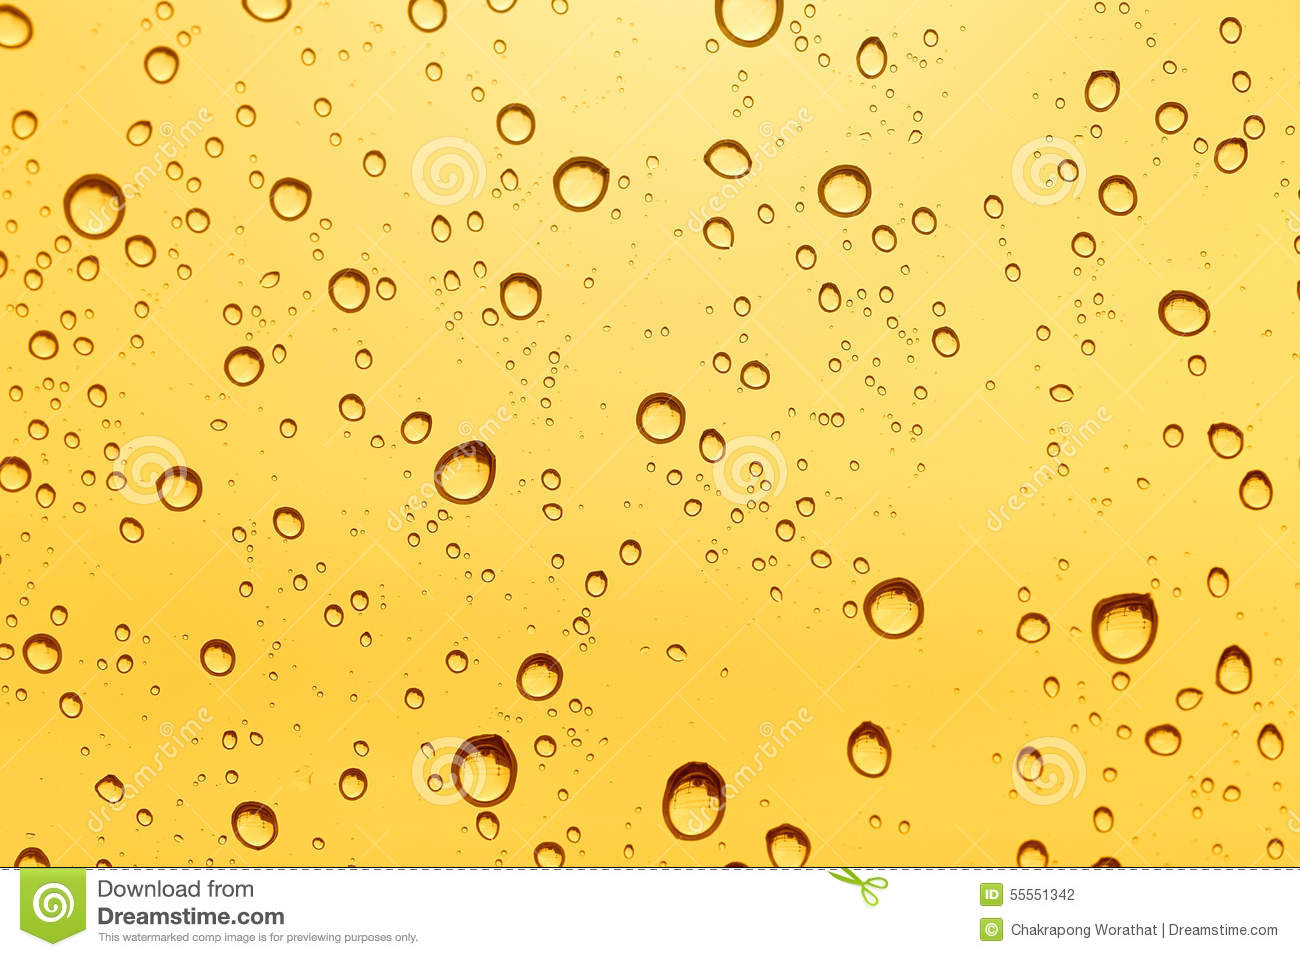 Gold Water Drop Background. Stock Photo - Image: 55551342